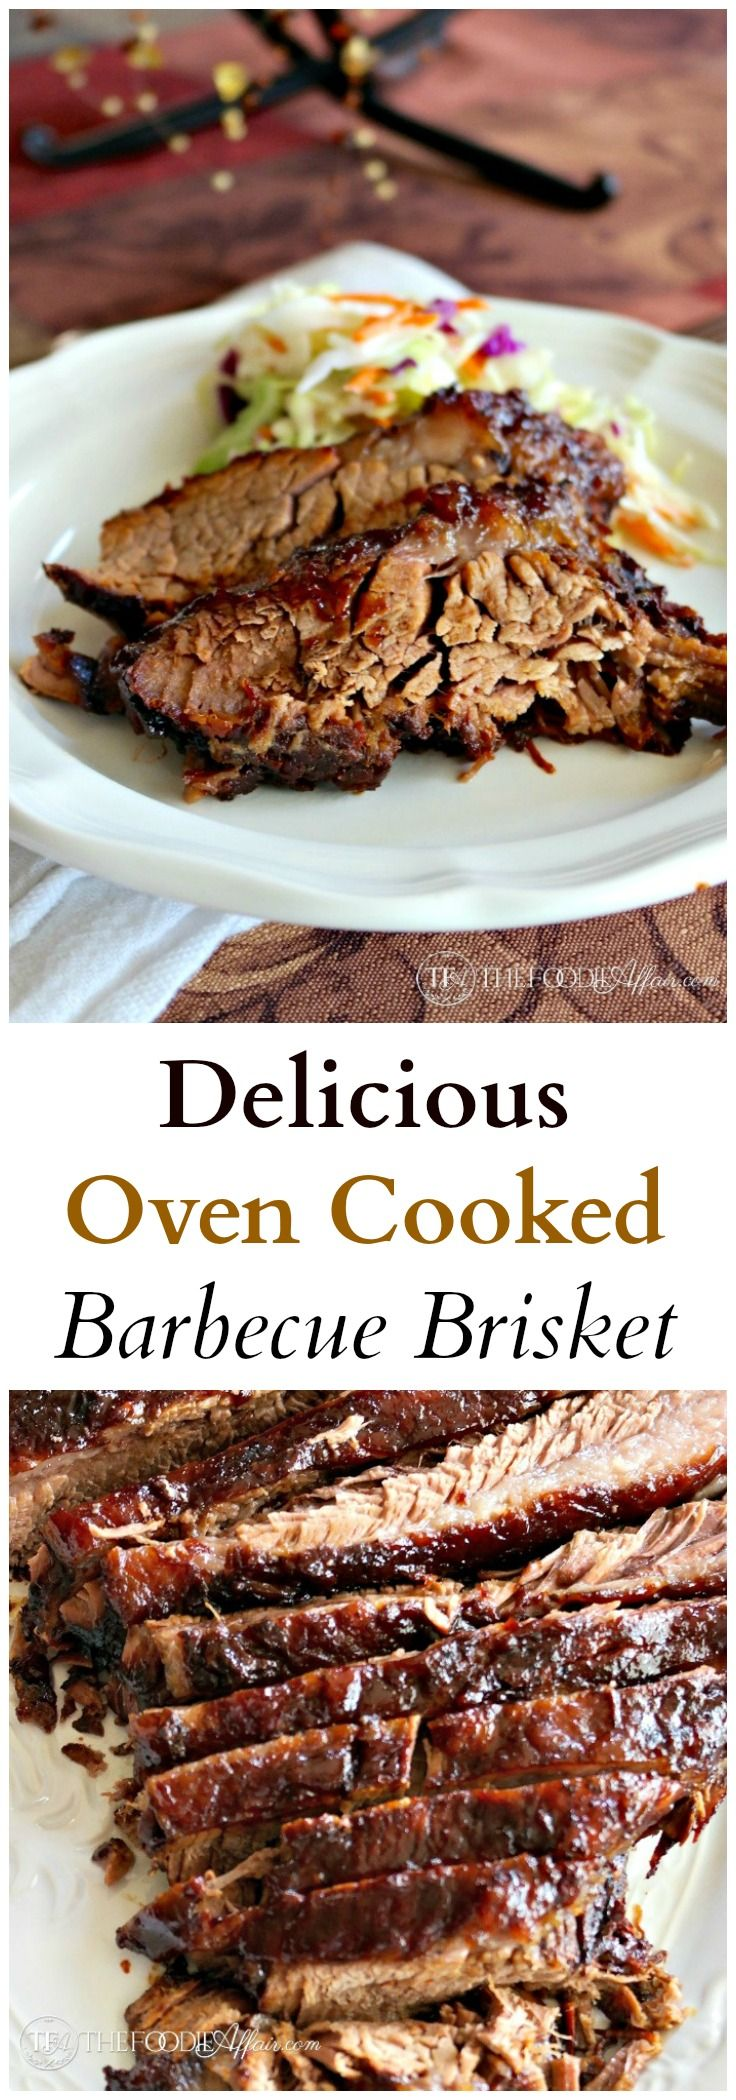 Delicious Oven Cooked Barbecue Brisket #meatrecipes